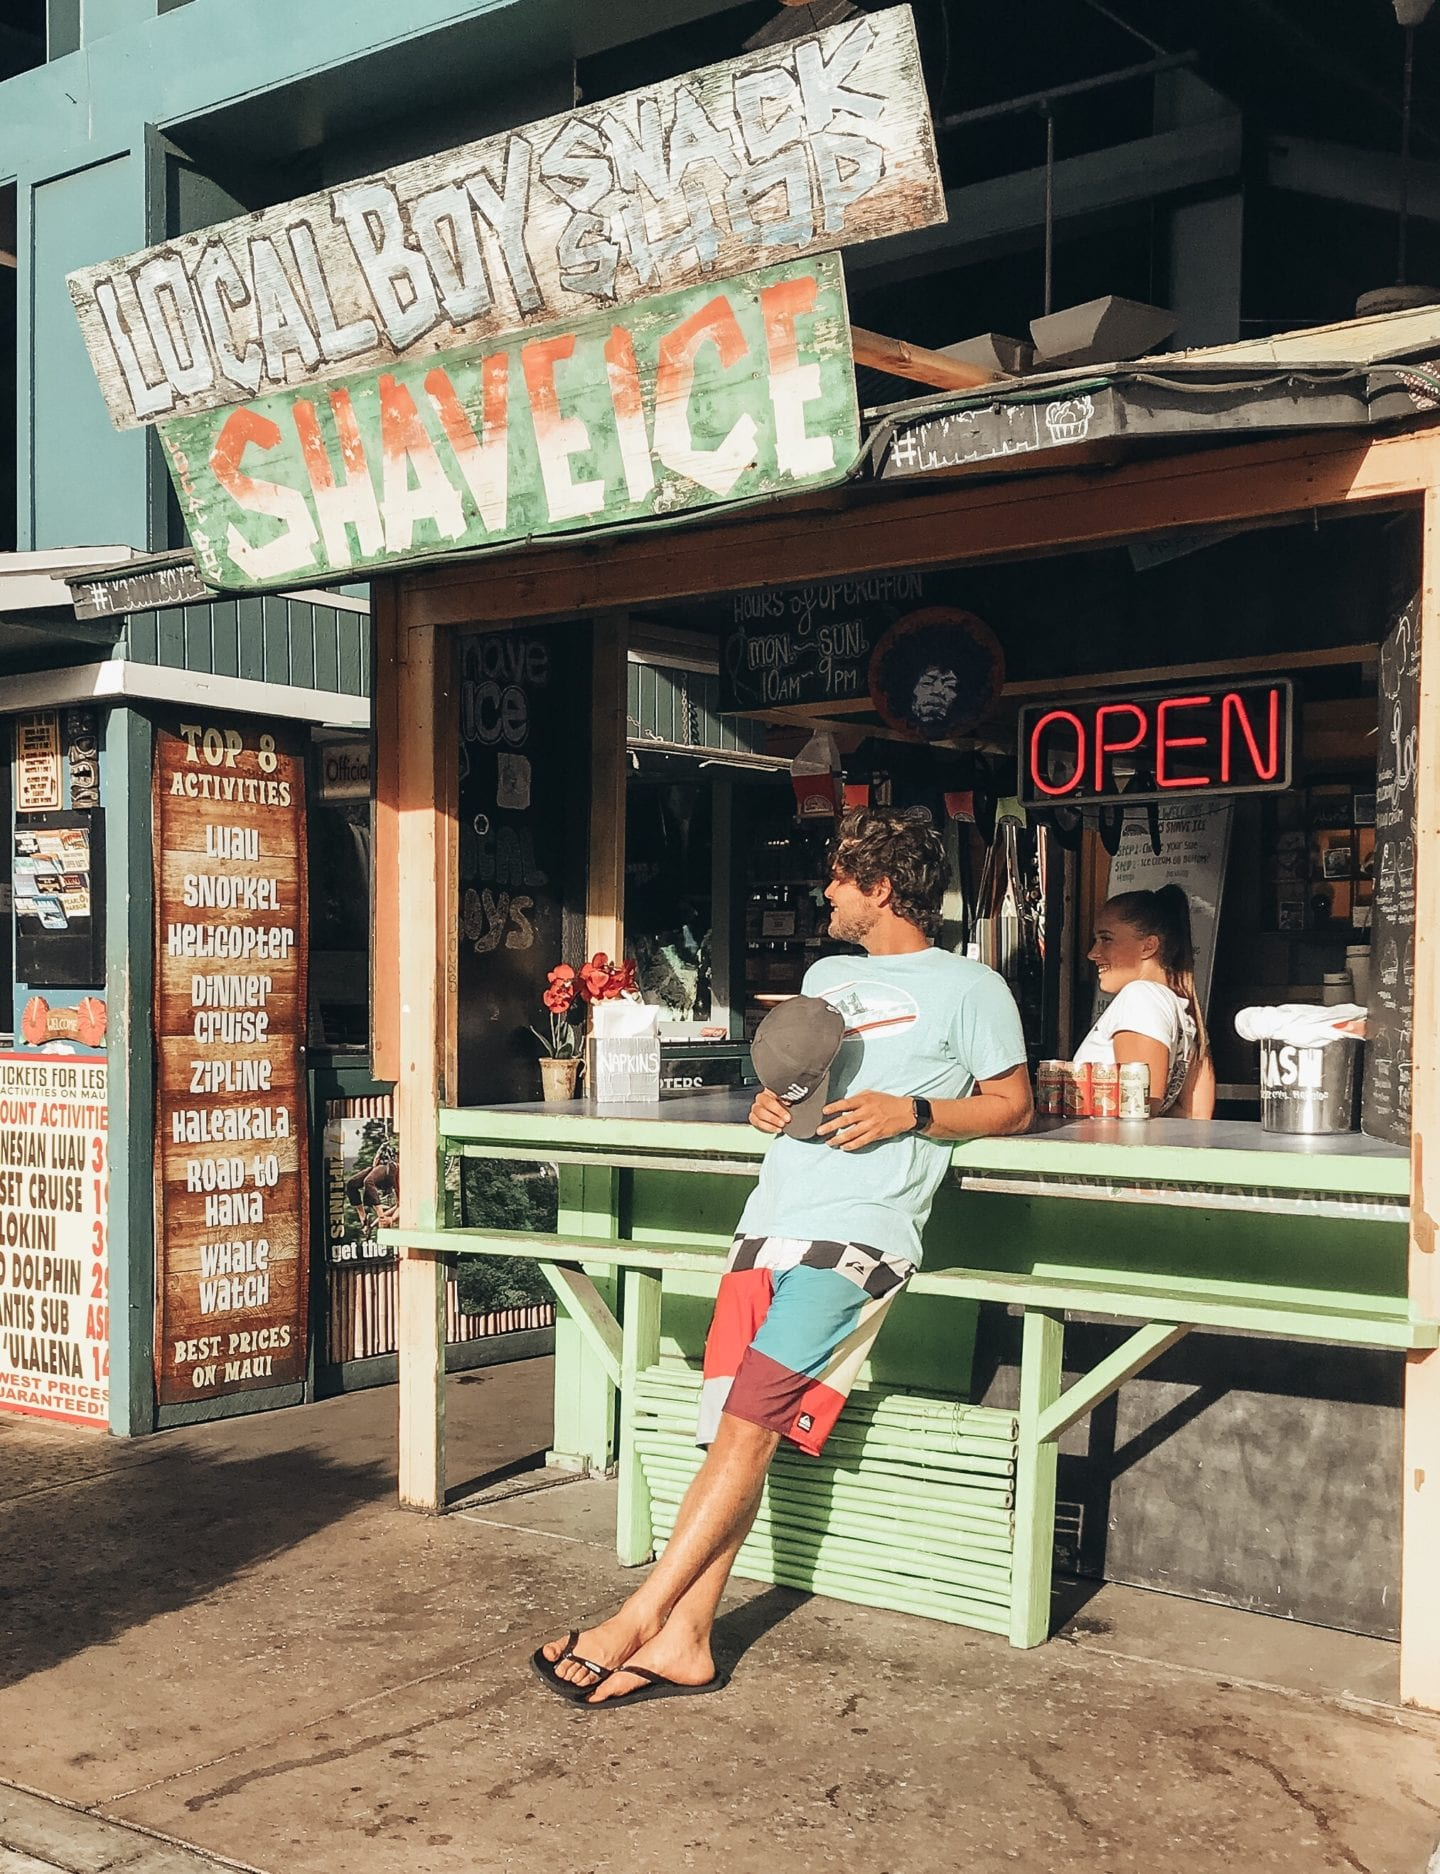 Downtown Lahaina I Maui travel guide I Hawaii Travel Guide I via justaddglam.com   Top Things to Do in Maui featured by top San Francisco travel blog, Just Add Glam: Lahaina